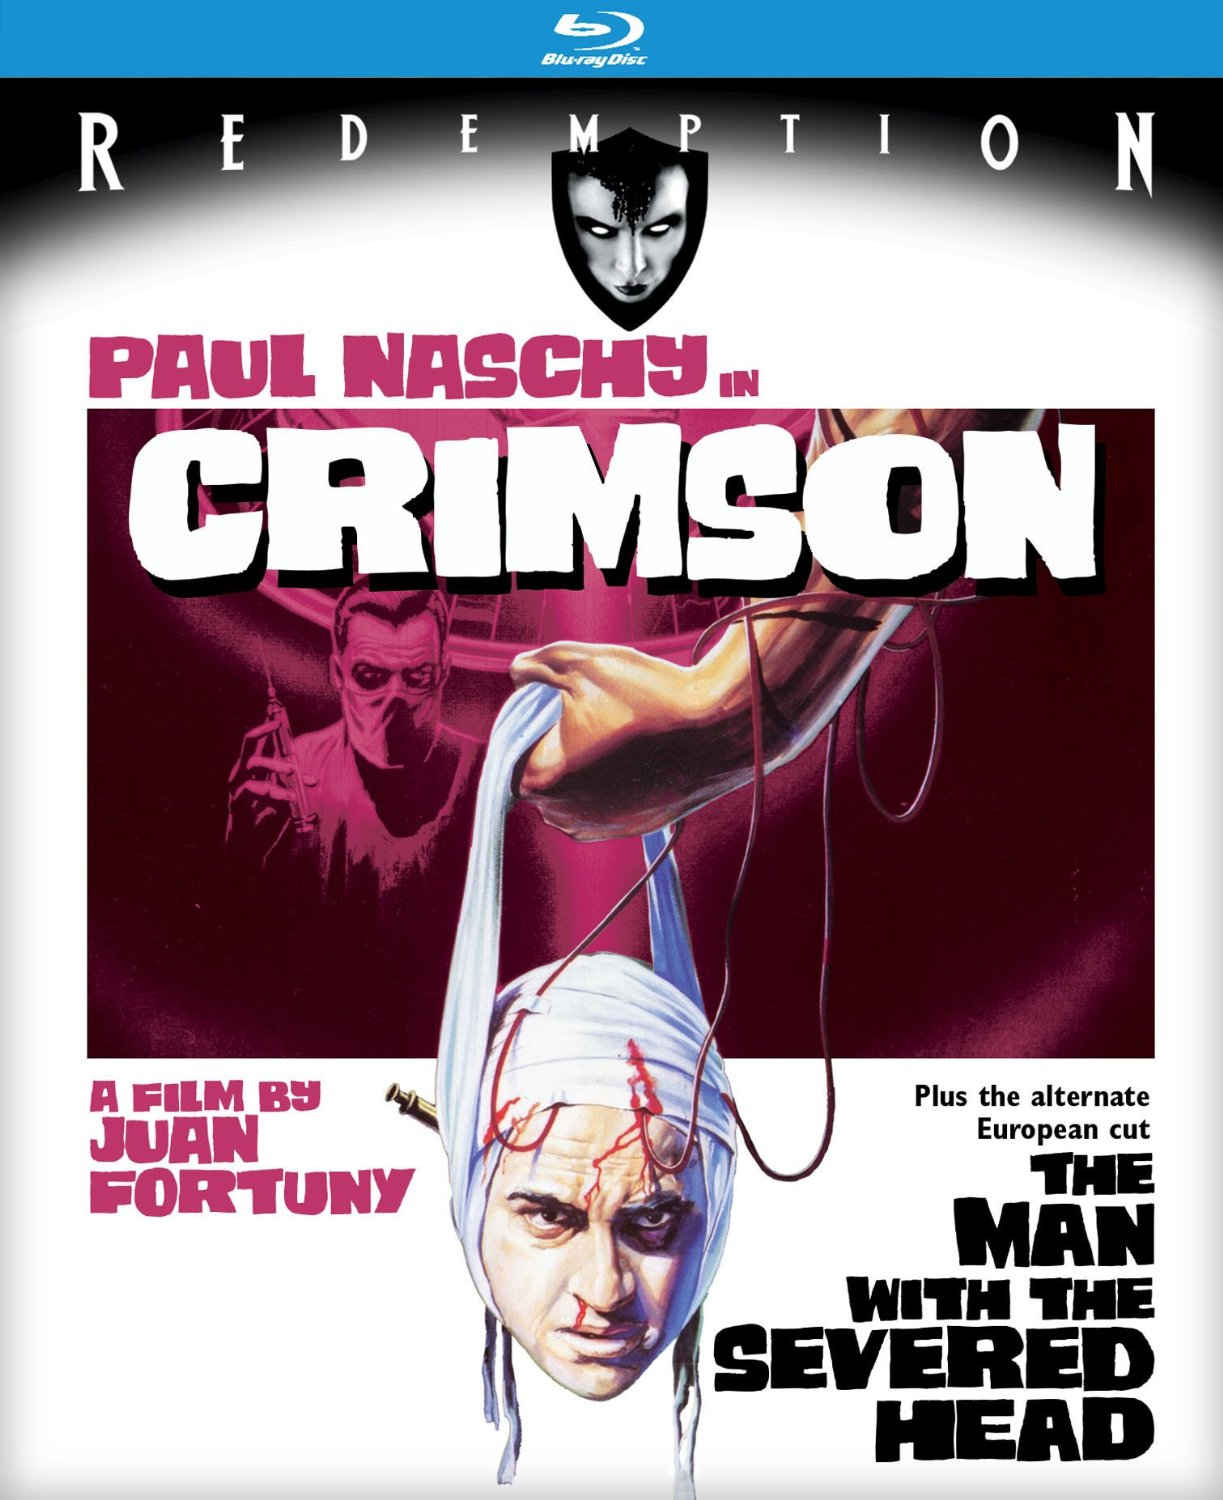 crimson - Paul Naschy's Severed Head Leaves Crimson Stains on Kino Lorber